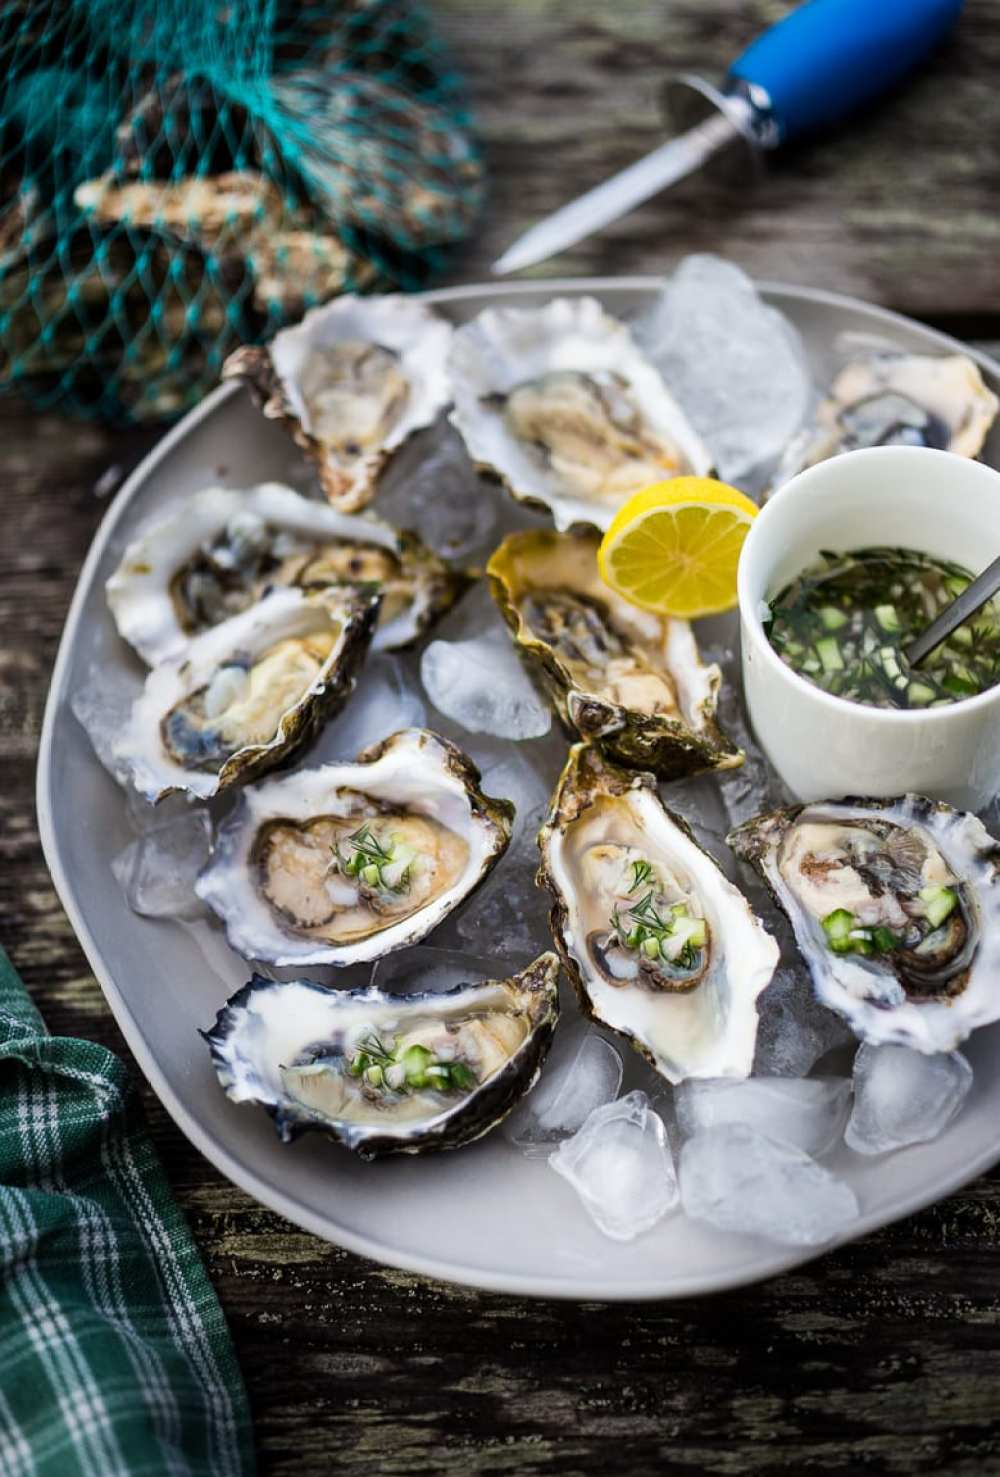 Oysters with Mustard Seed Mignonette